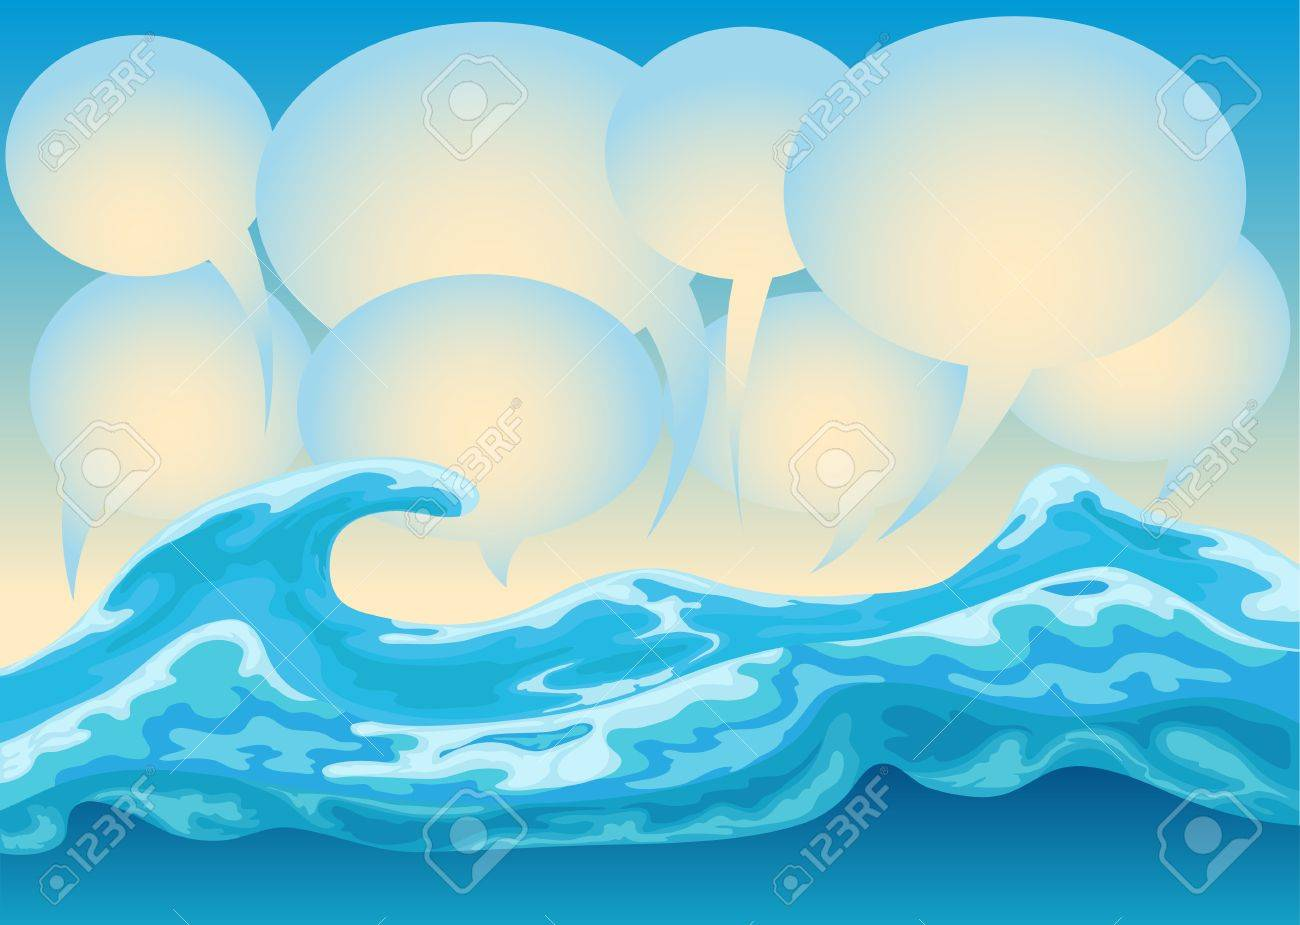 ocean wave with bubble text Stock Vector - 12479981